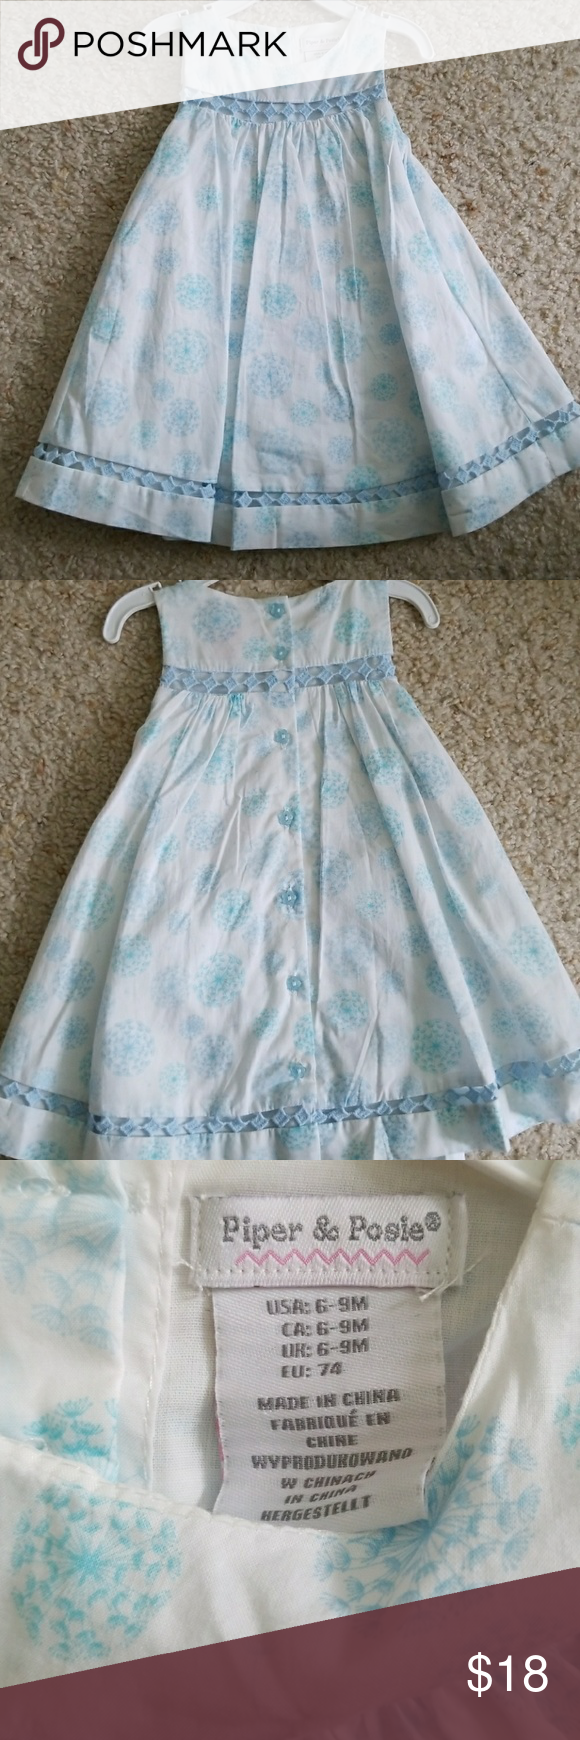 Piper Posie Baby Dress Customer Support And Delivery